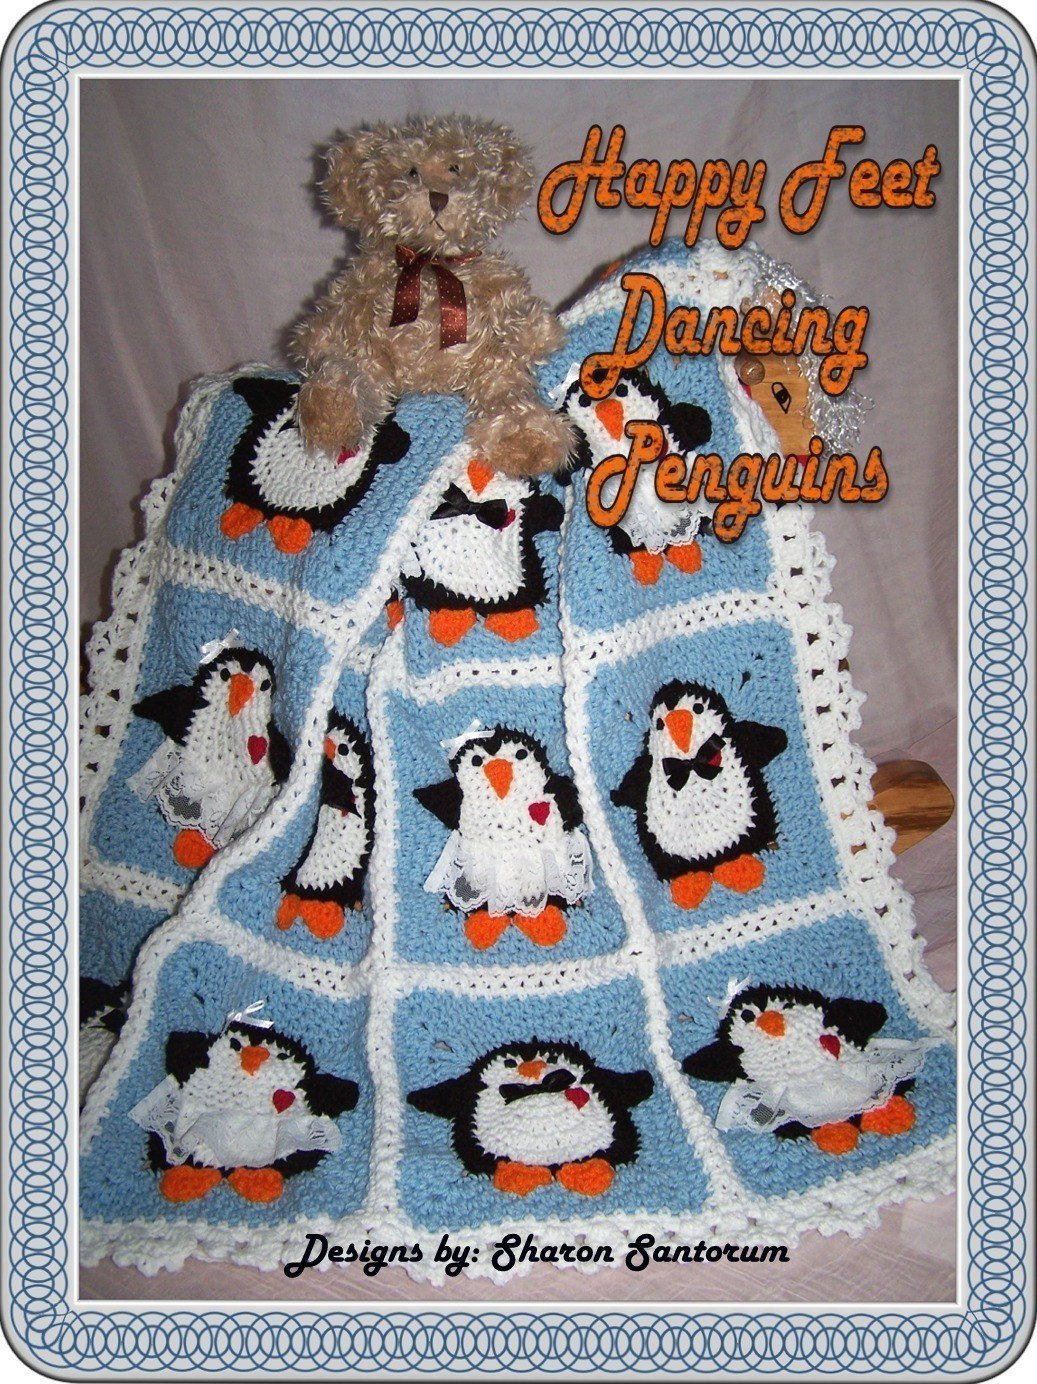 Baby Boy Crochet Blanket Patterns Beautiful Dancing Penguins Crochet Baby Afghan or Blanket Pattern Pdf Of Baby Boy Crochet Blanket Patterns New Beautiful Baby Boy Blanket Crochet Pattern for Pram